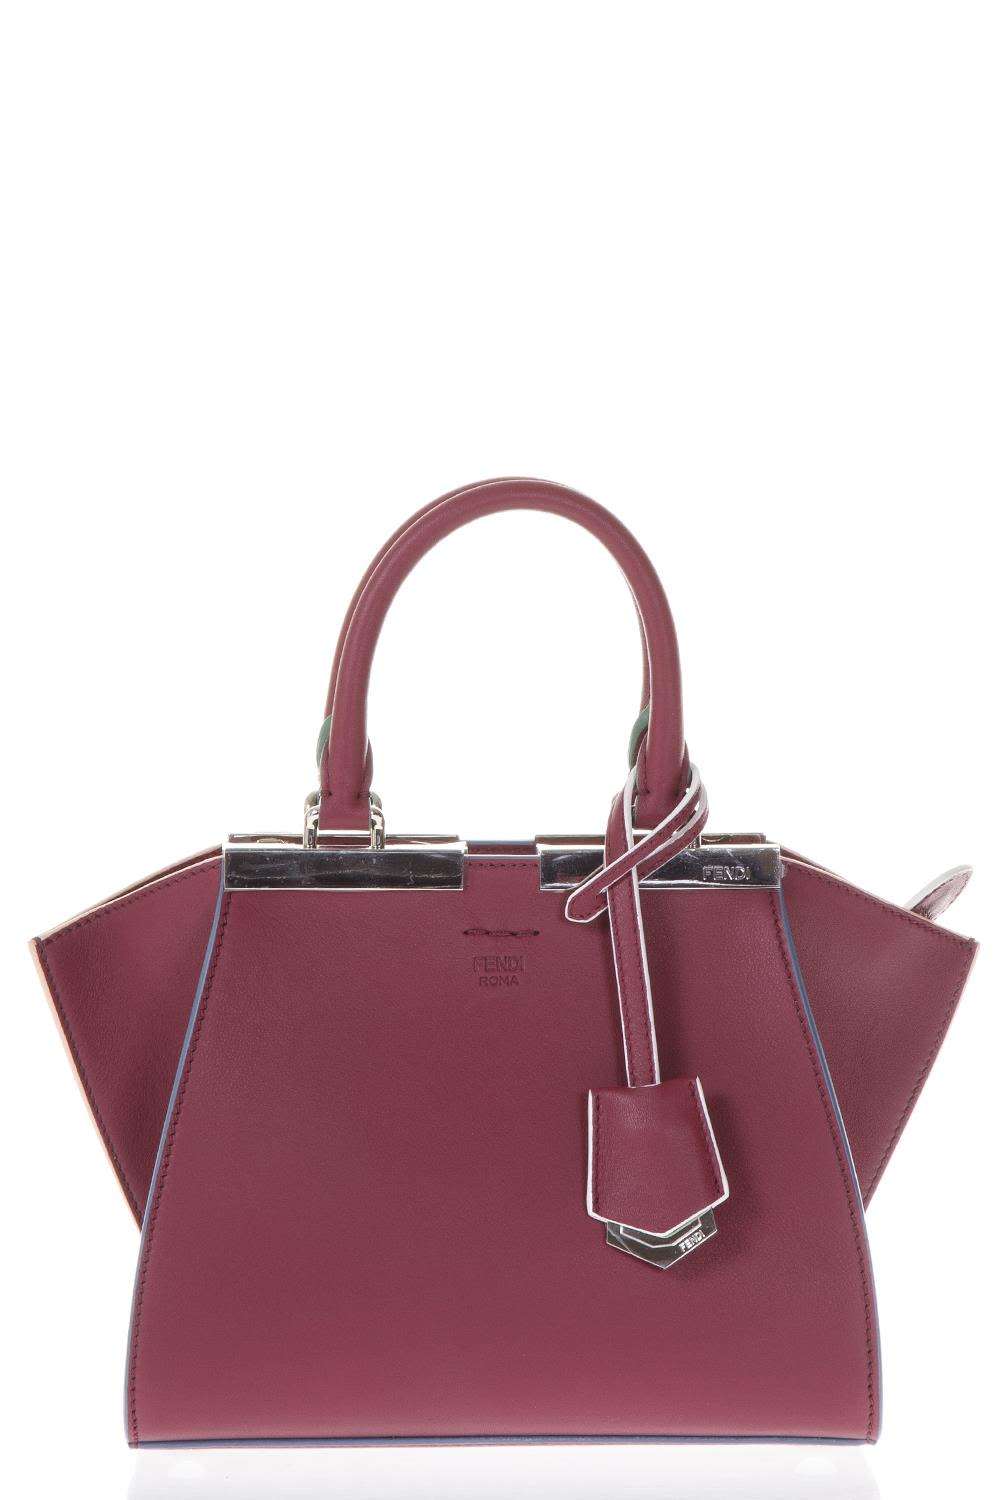 Fendi Mini 3jours Cherry Leather Bag